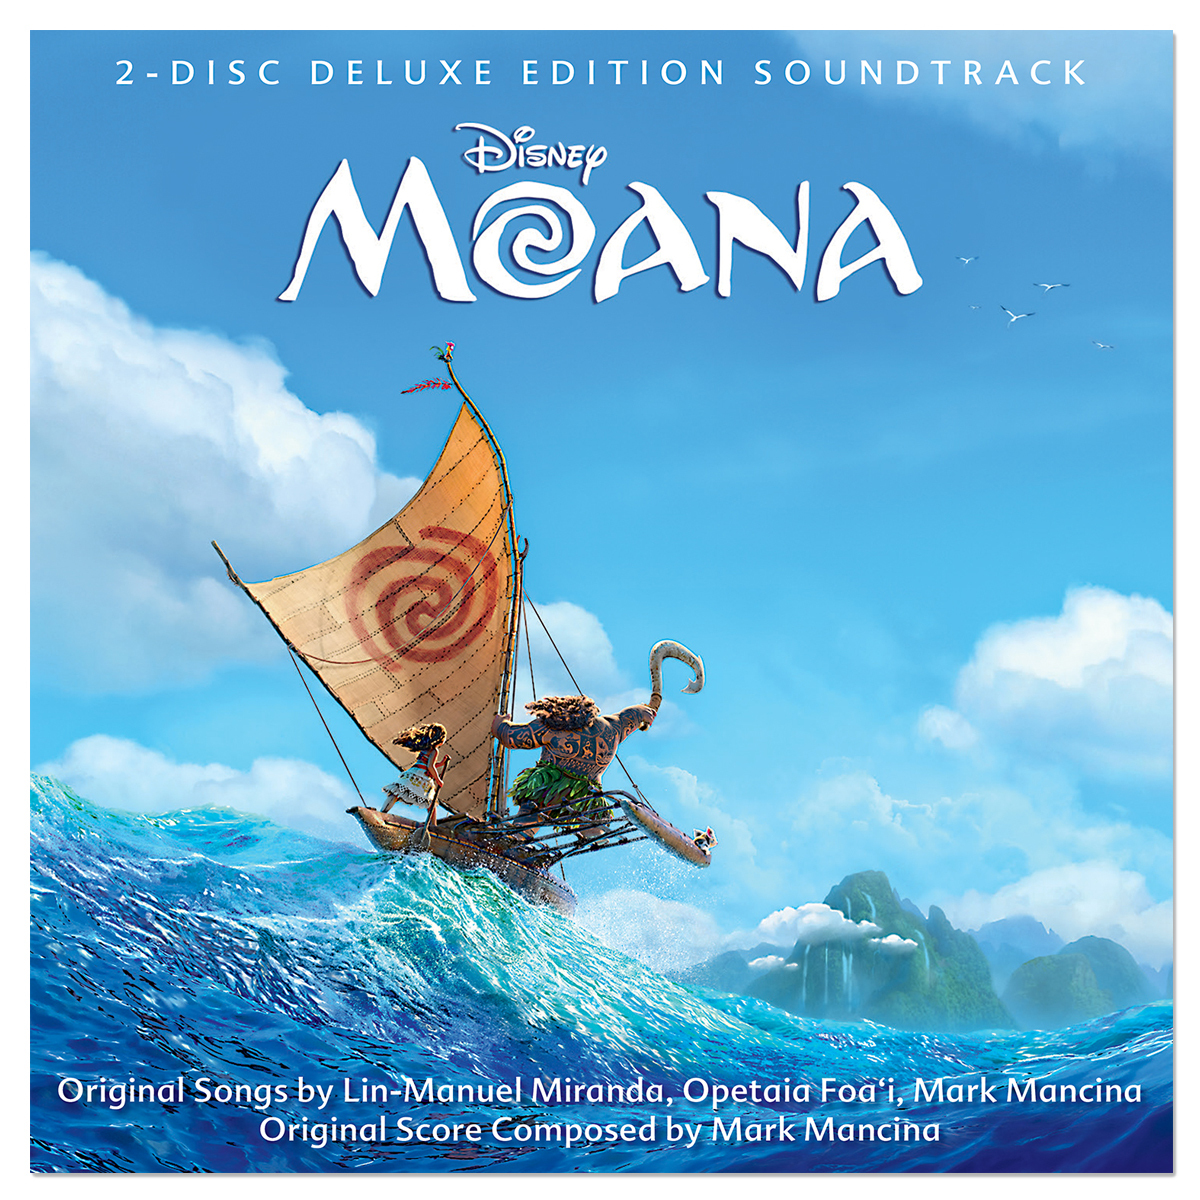 Moana Deluxe Edition Soundtrack